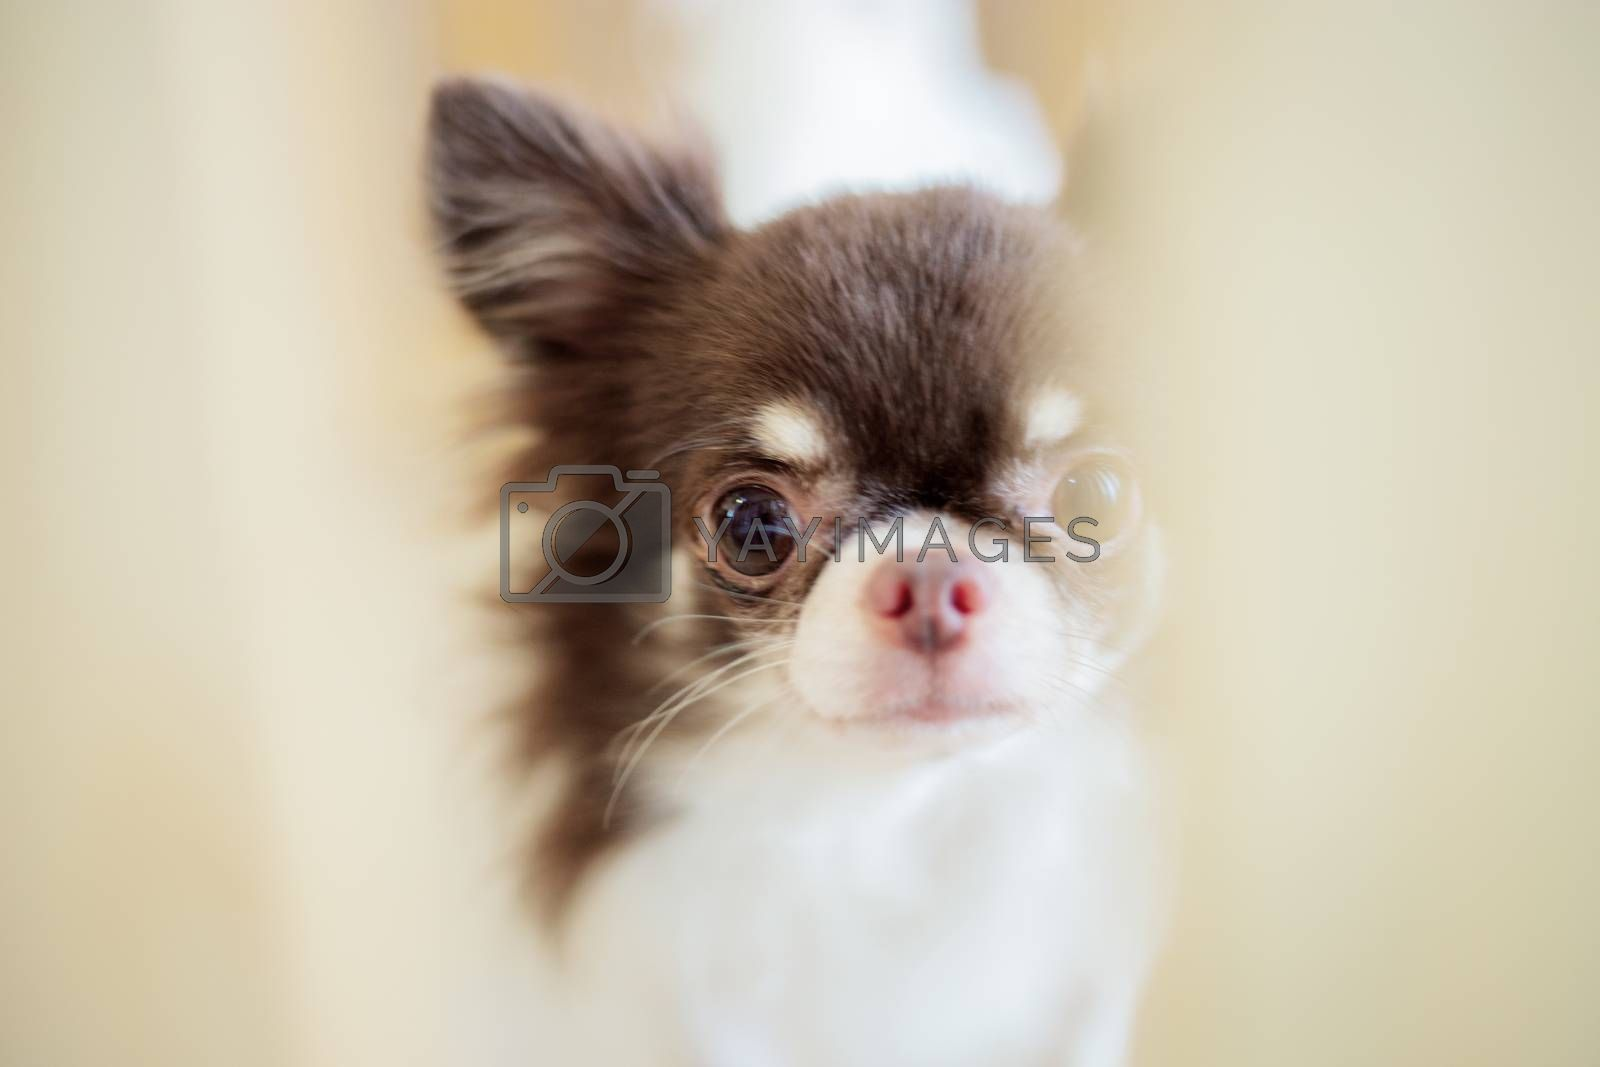 Dog in a cage of wood with blur background.